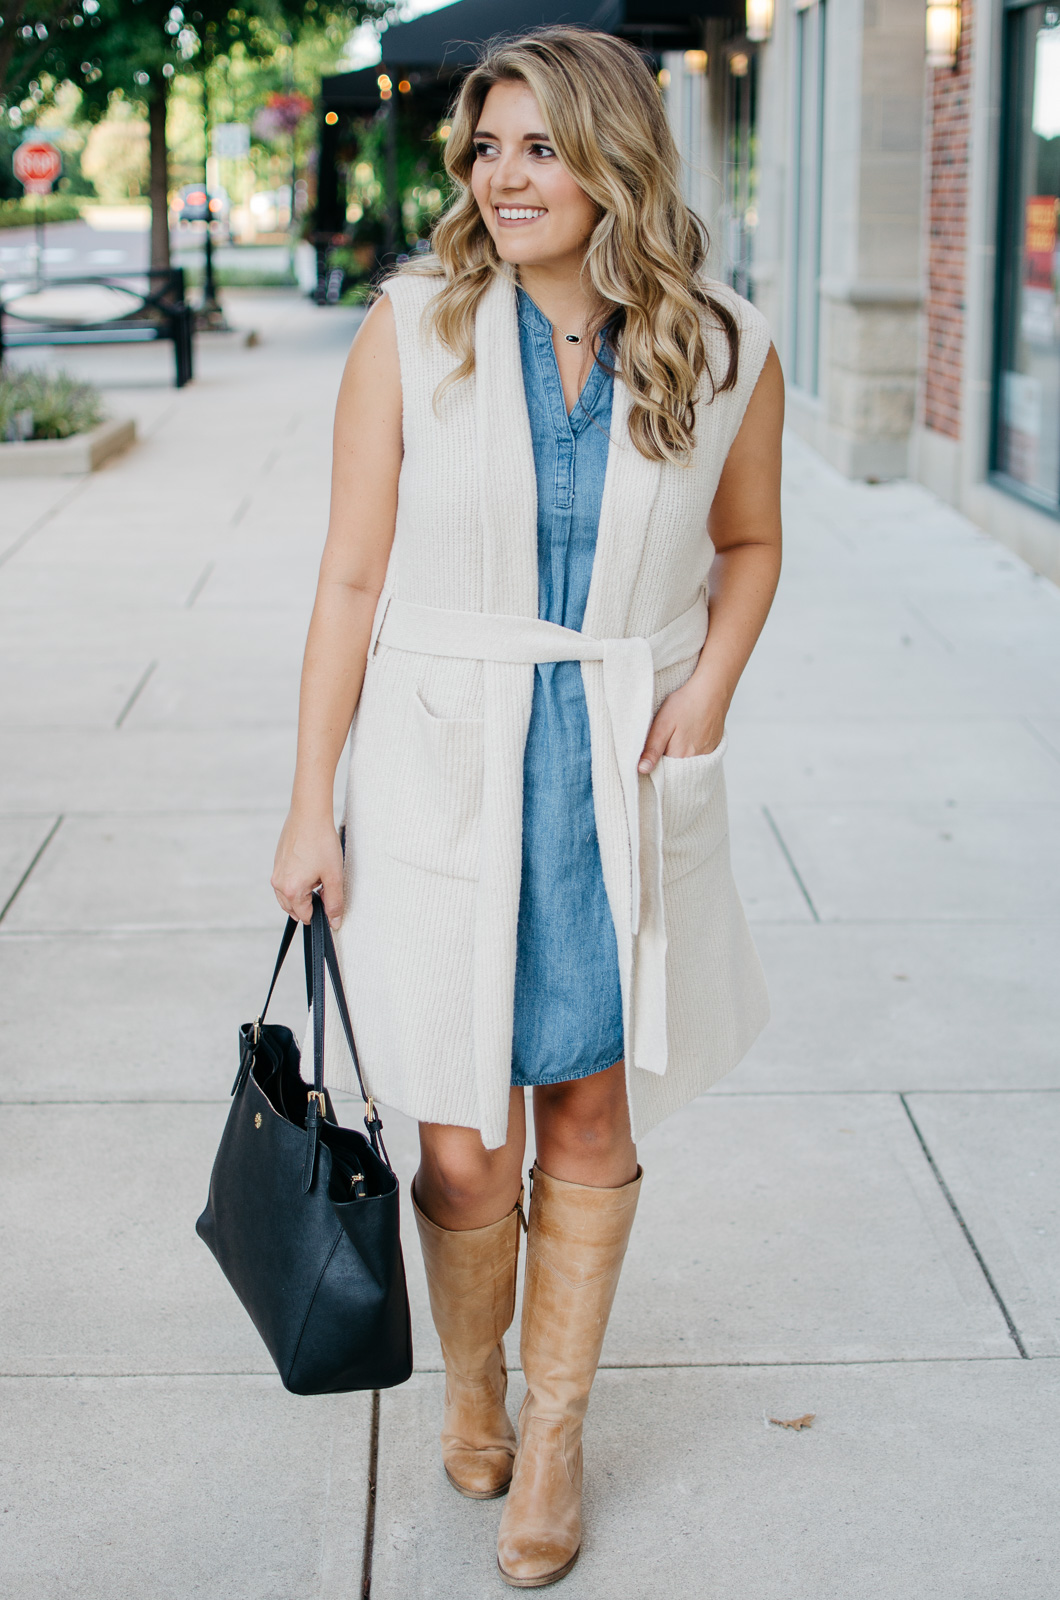 two ways to wear a long sweater vest - sweater vest and a dress outfit | Want to know how to wear a sleeveless sweater? I'm sharing two outfit ideas in today's post! bylaurenm.com